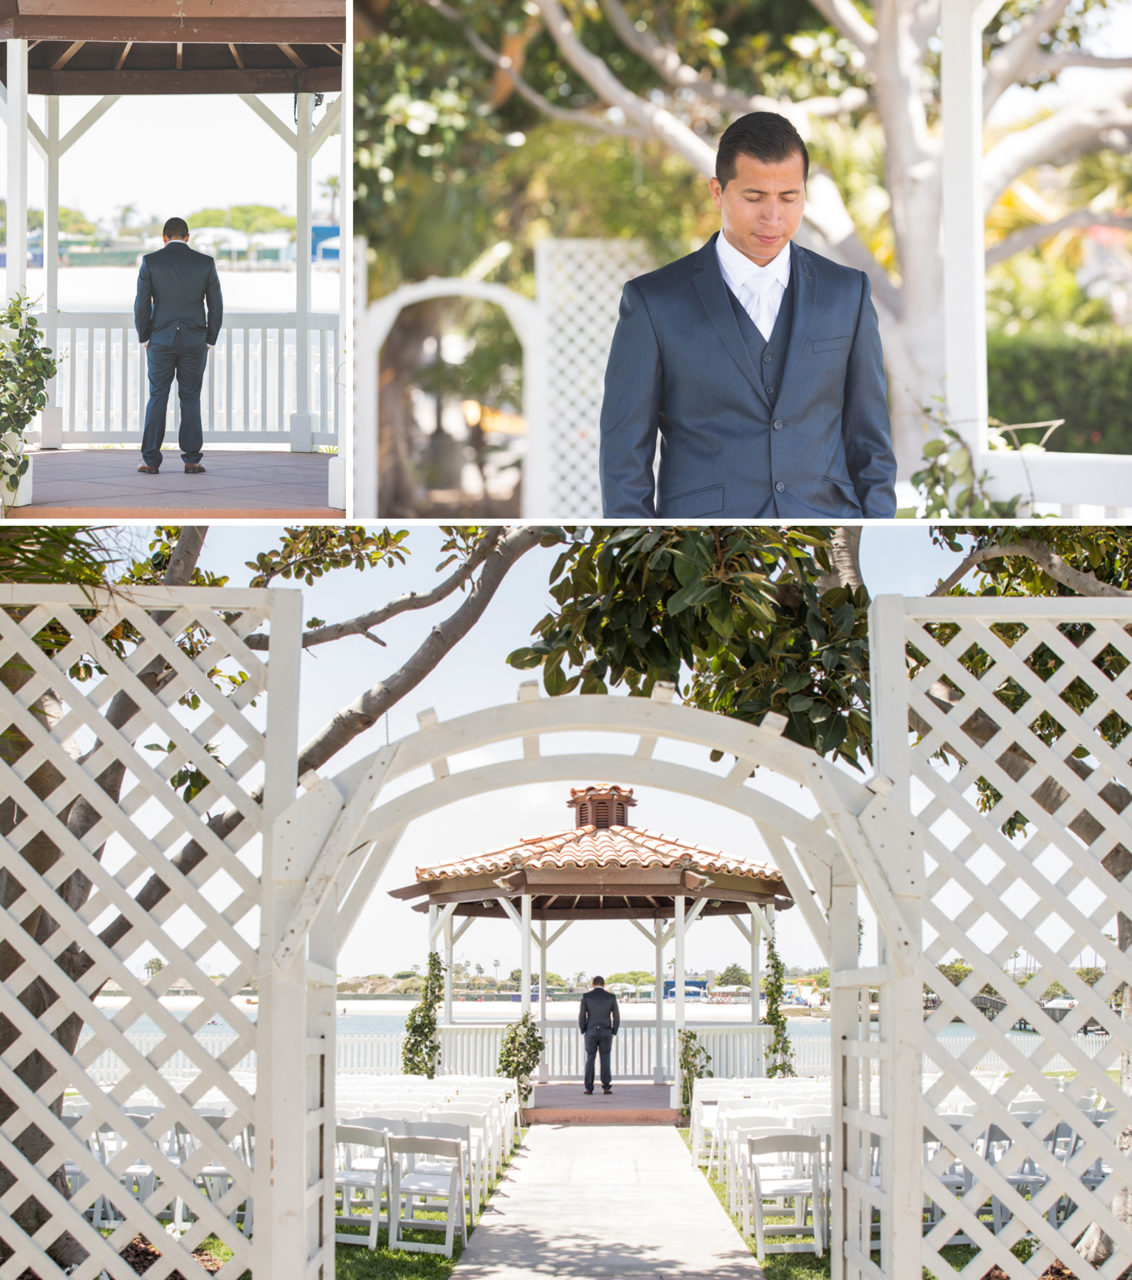 manny-pittsburgh-wedding-photographer-in-california-at-newport-beach-06